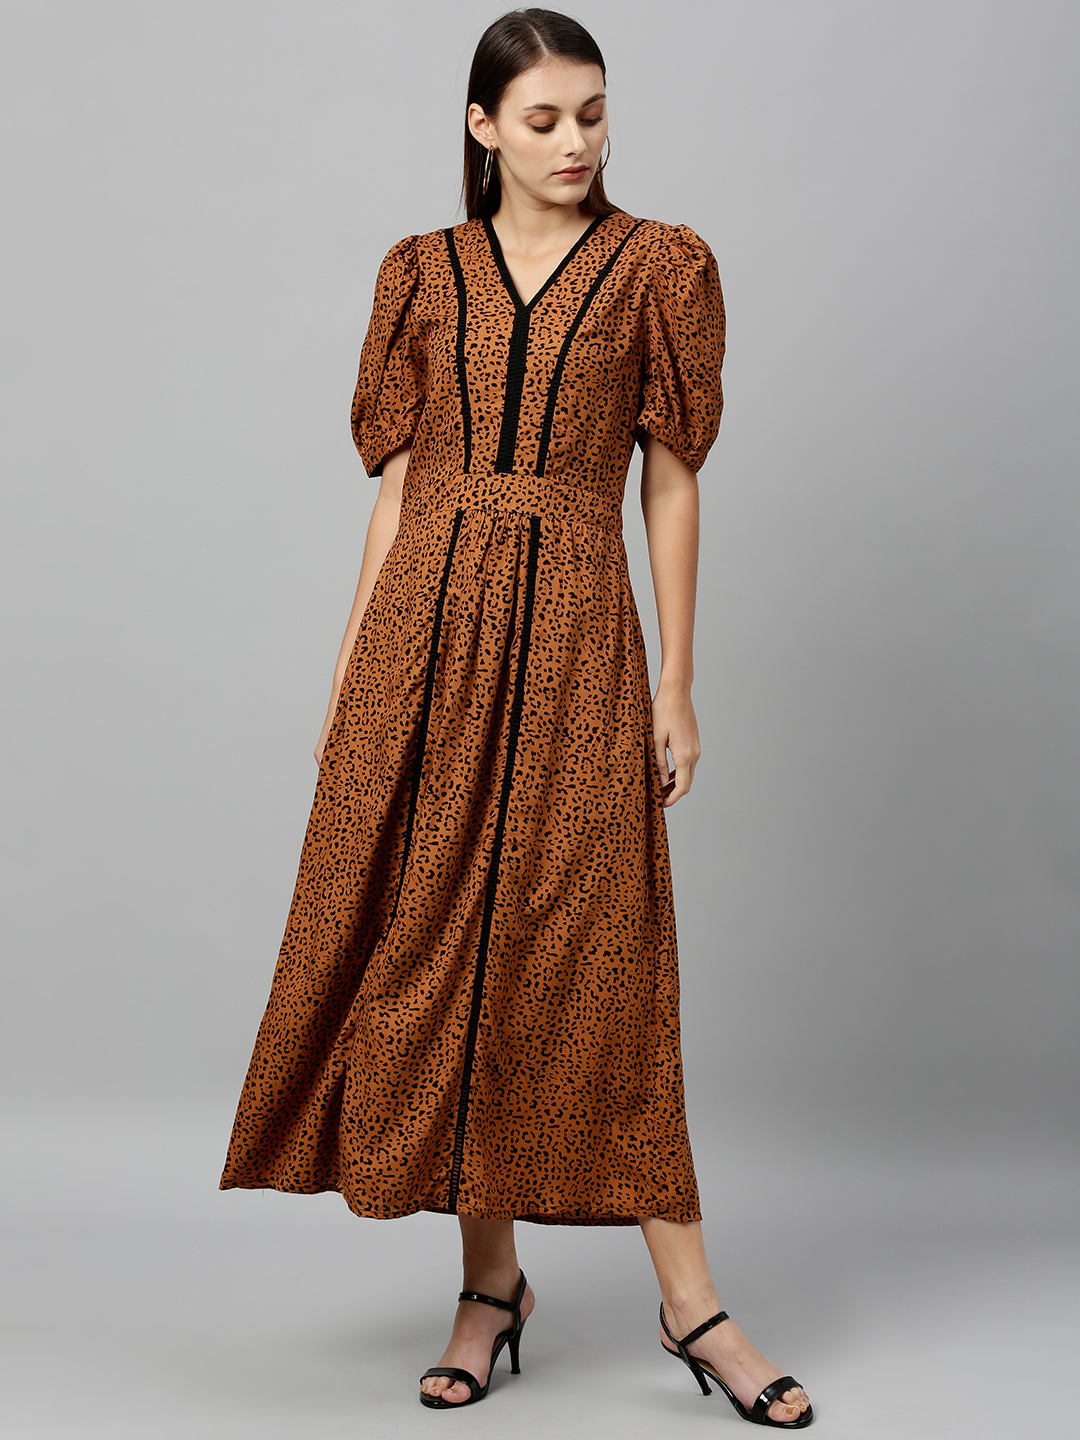 Leopard print long length dress with lace inserts